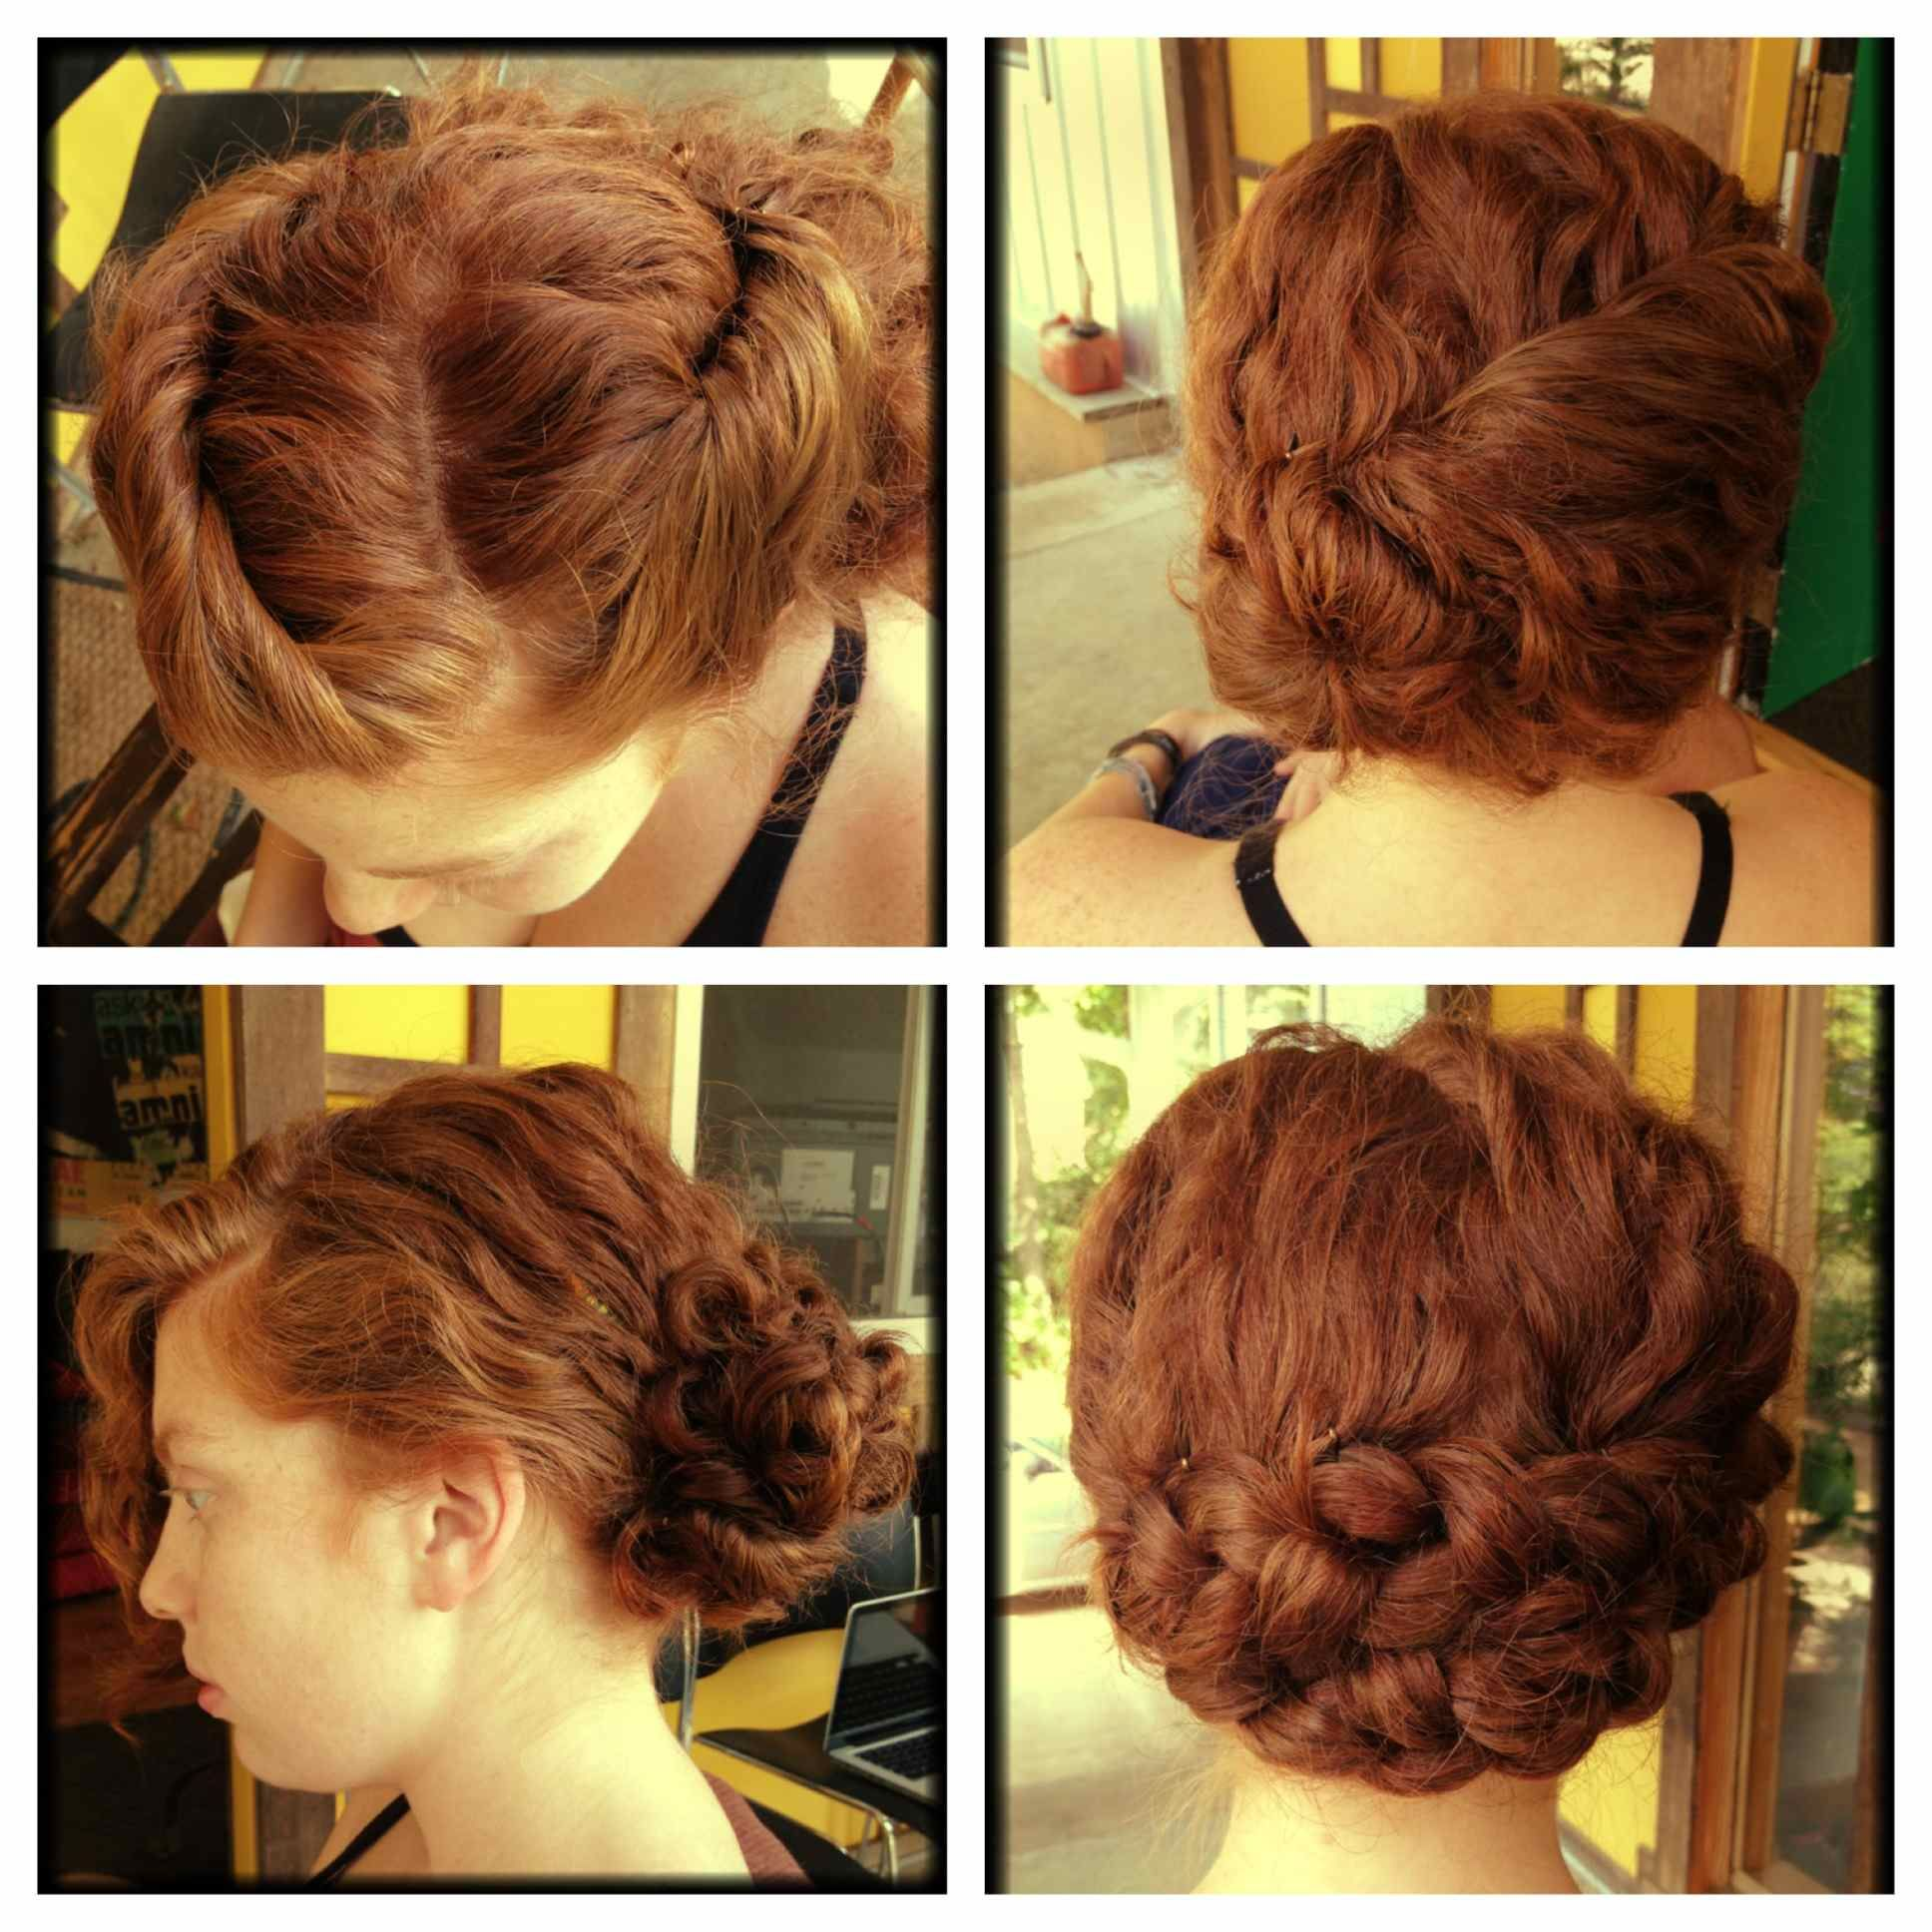 Curly Hair Wedding Diy: Do It Yourself With How-To Hair Girl, Your Premier Online